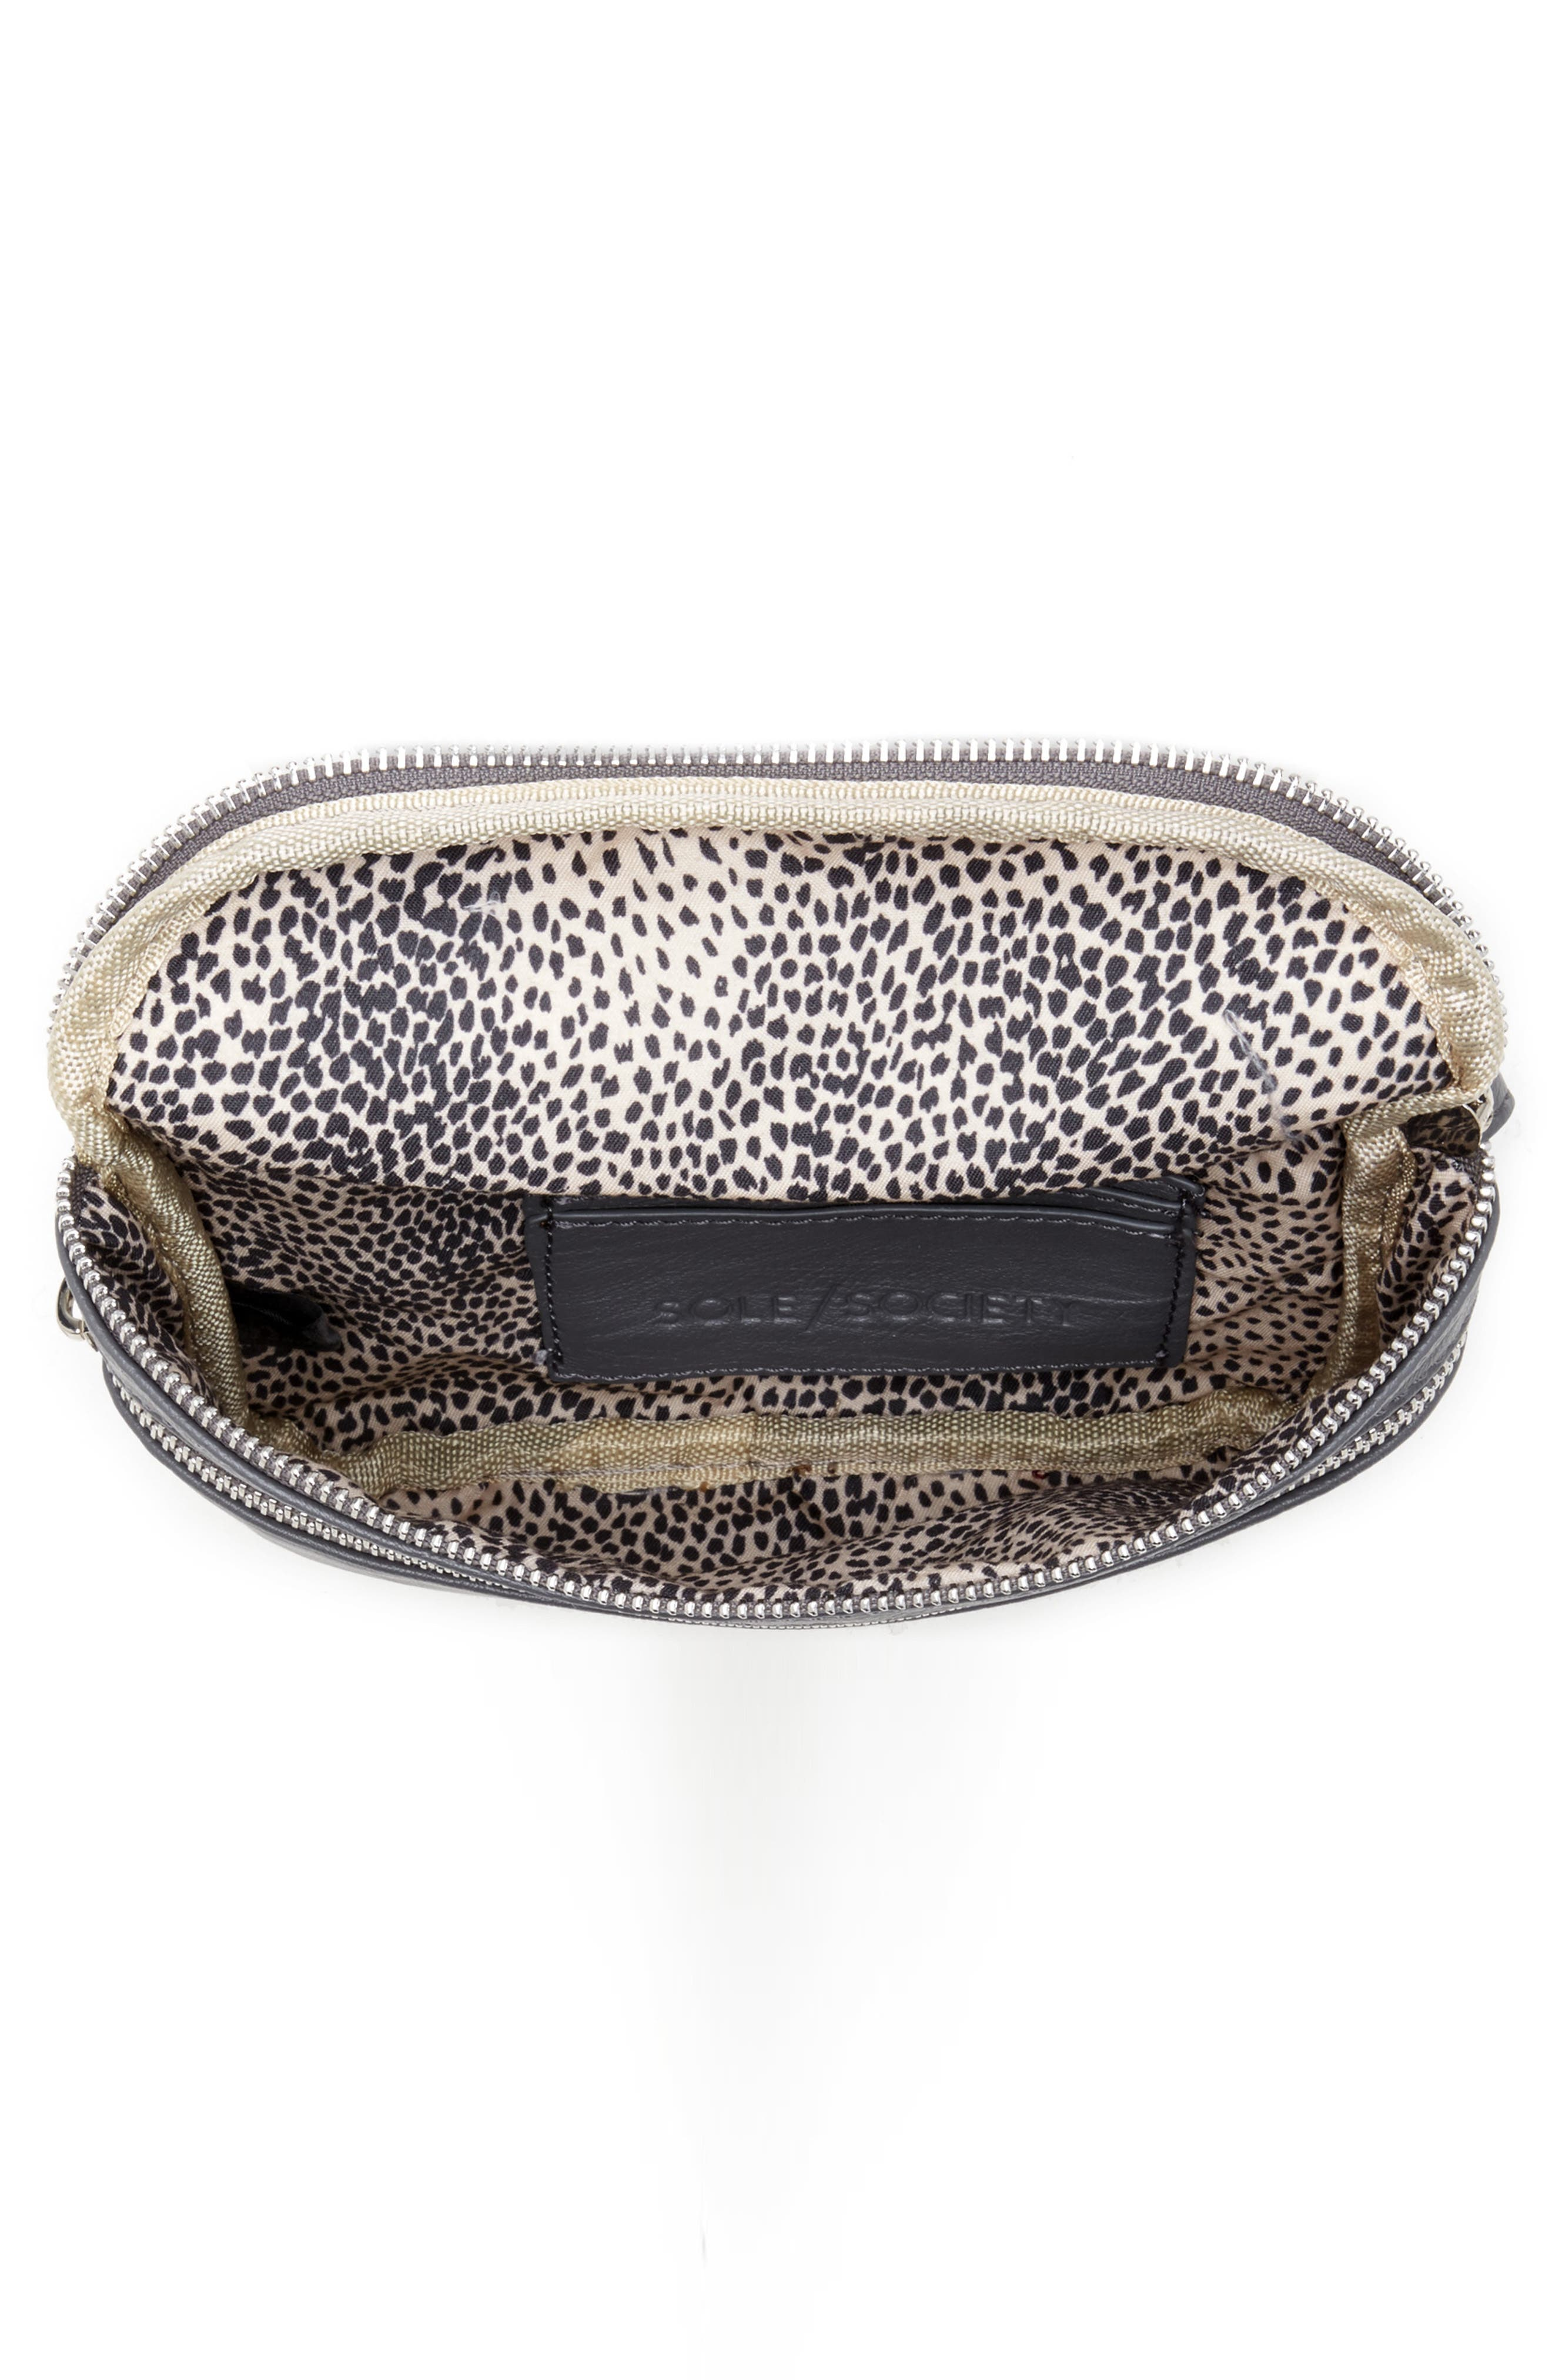 SOLE SOCIETY, Cadee Faux Leather Belt Bag, Alternate thumbnail 4, color, CHARCOAL